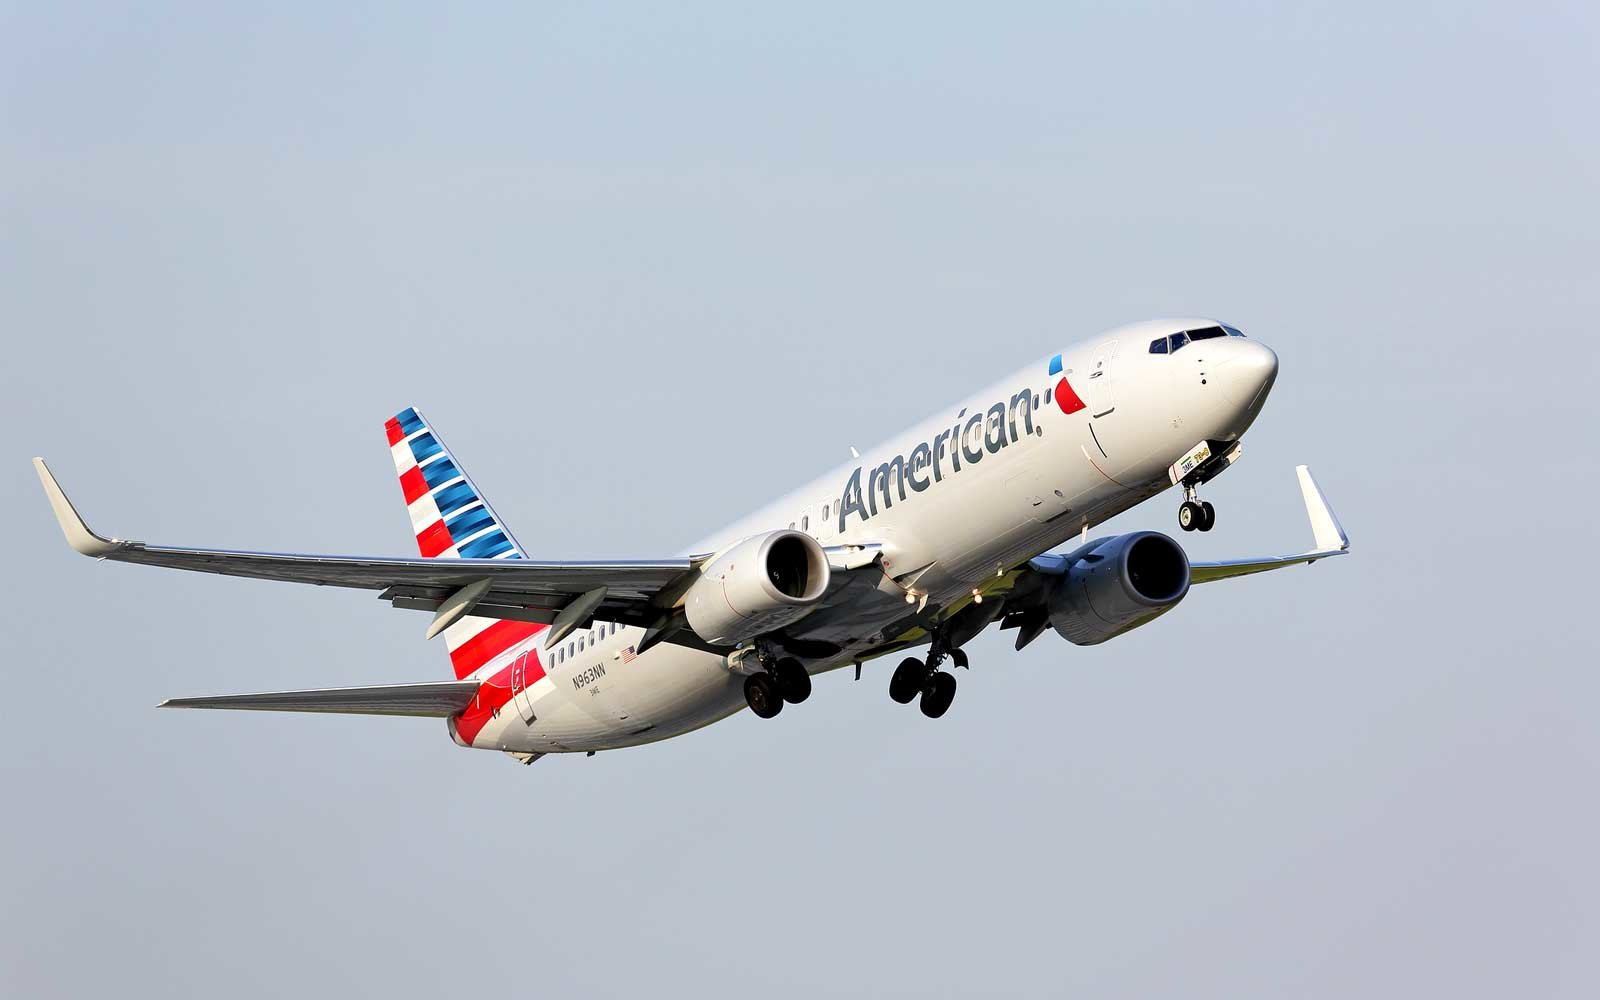 Overhead Bin Issue Prompts American Airlines to Ground Planes, Cancel Flights